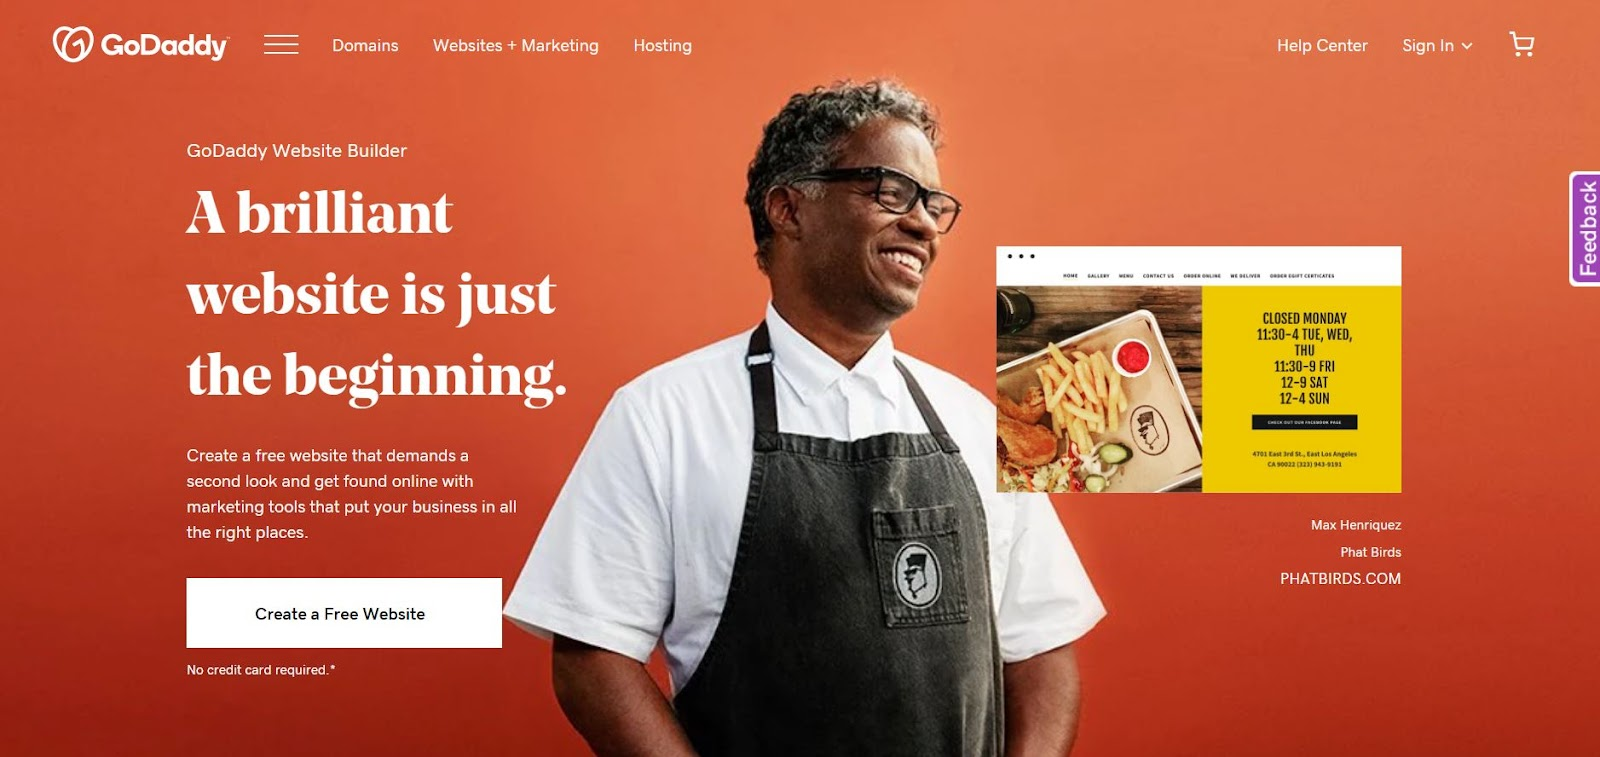 GoDaddy: The Top 10 Website Platforms for Woodworkers and Makers